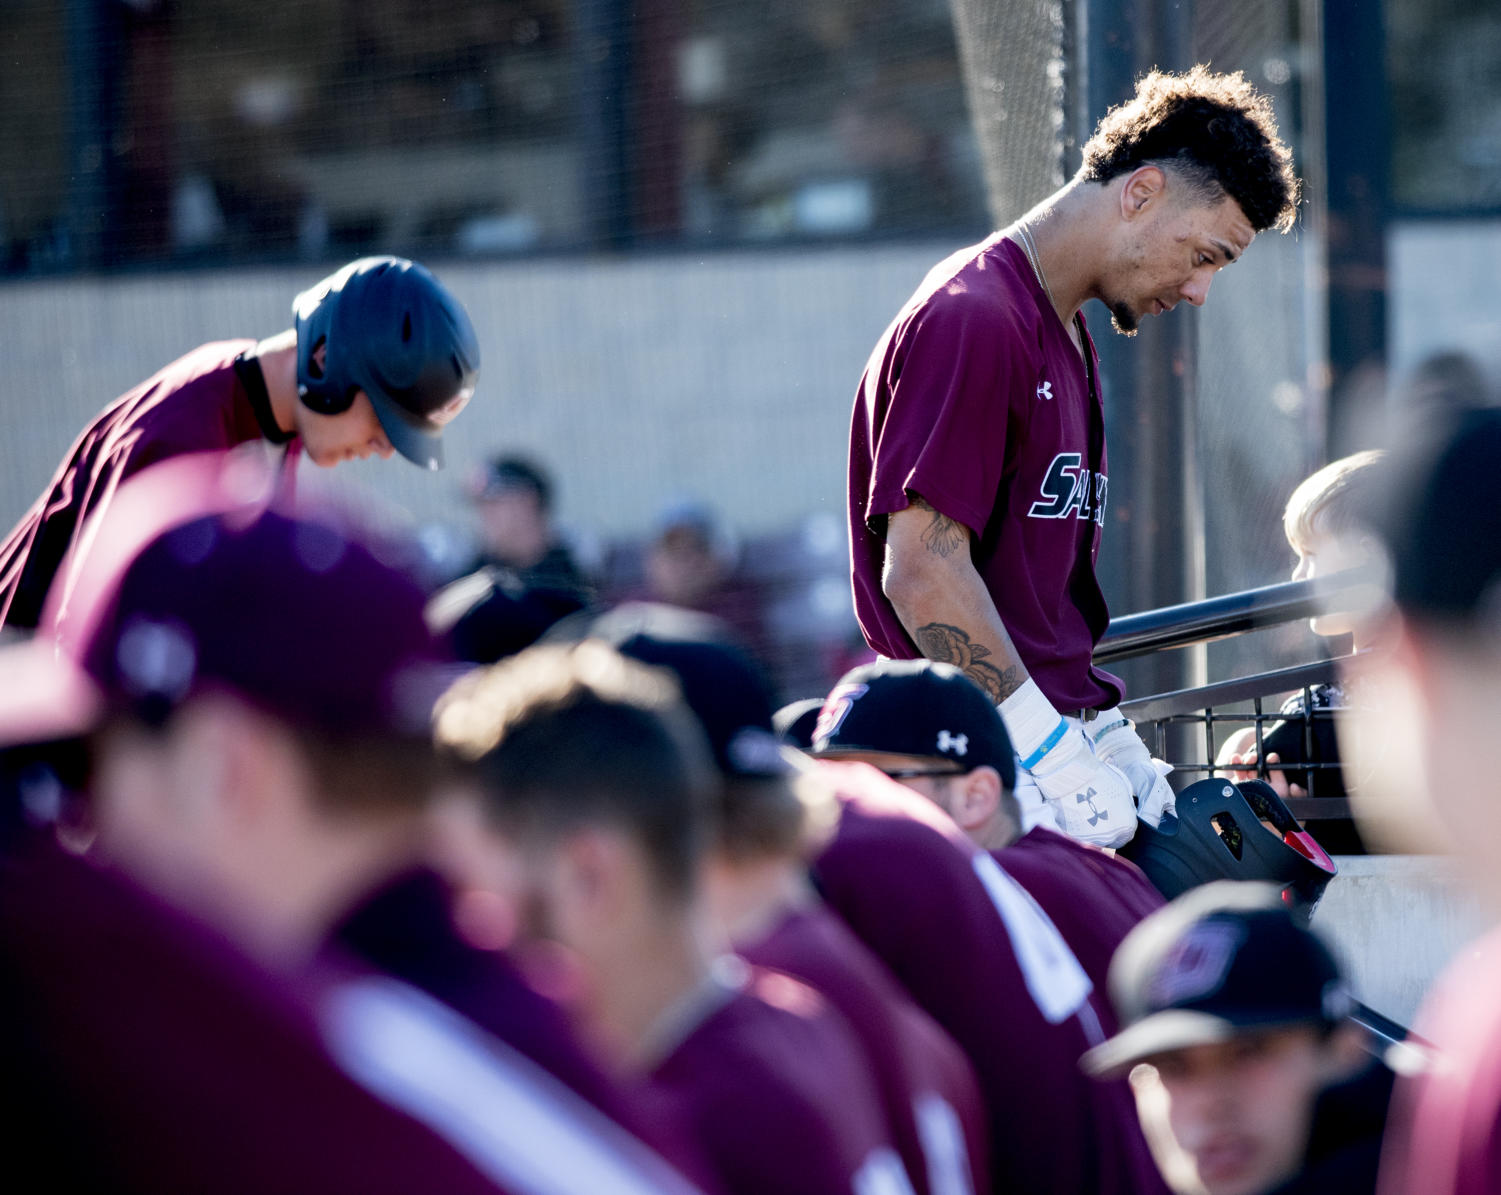 Junior outfielder Kenton Crawford takes a moment to think Friday, March 2, 2018, during the Louisiana Monroe's Warhawks 5-4 win over the Salukis' at Itchy Jones Stadium. (Cameron Hupp | @CHupp04)